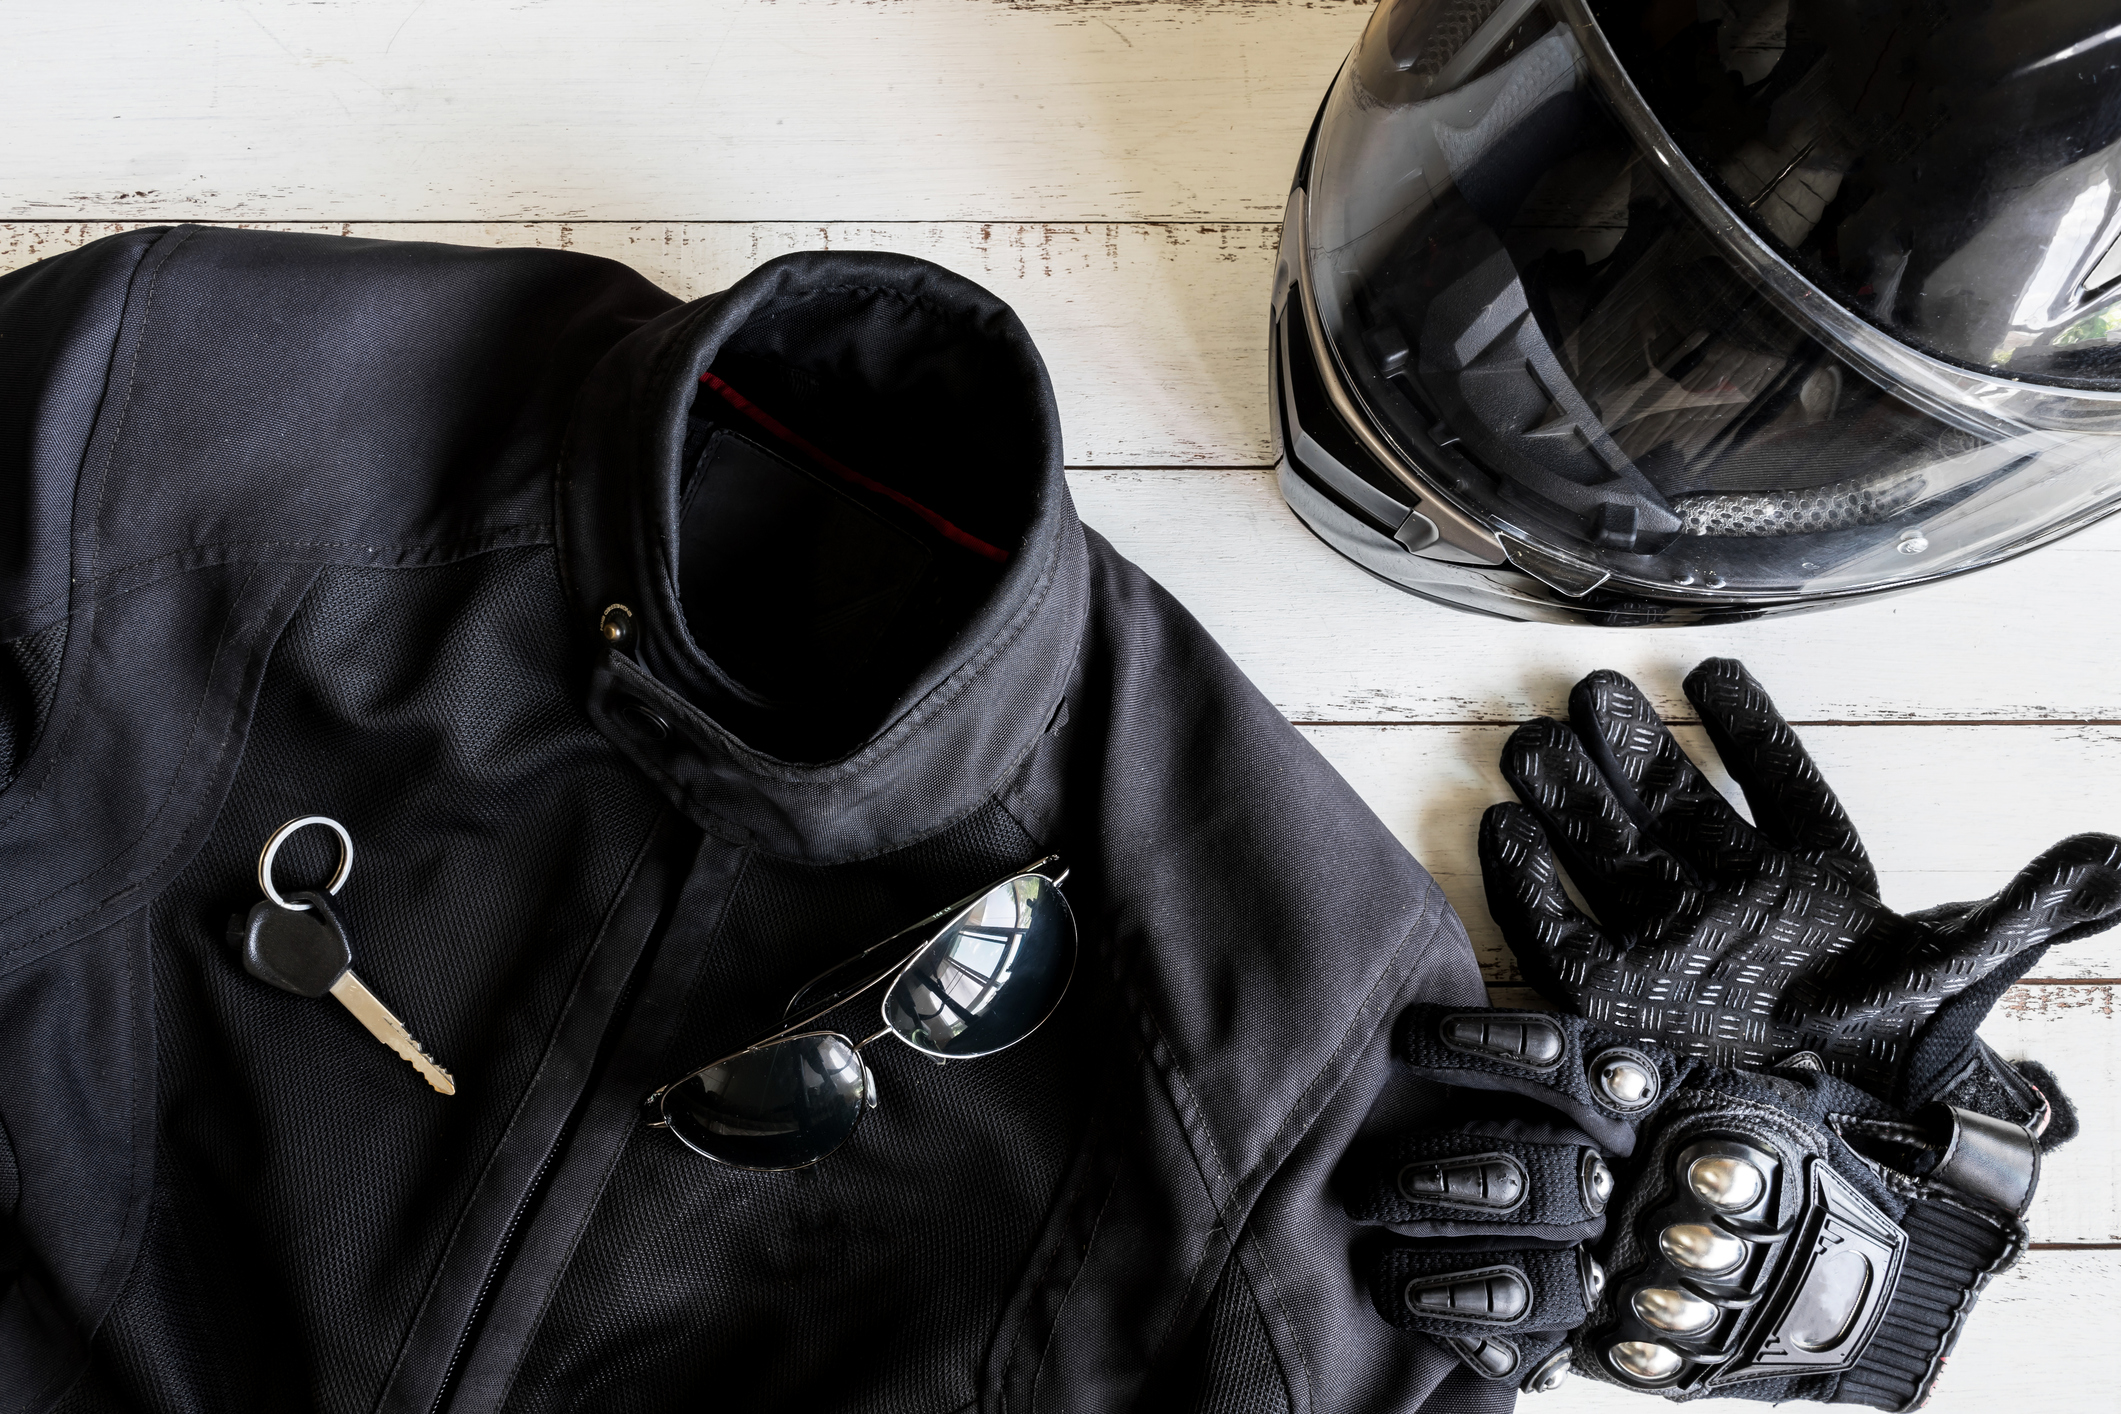 Outfit of Biker and accessories with copy space, Ready to ride